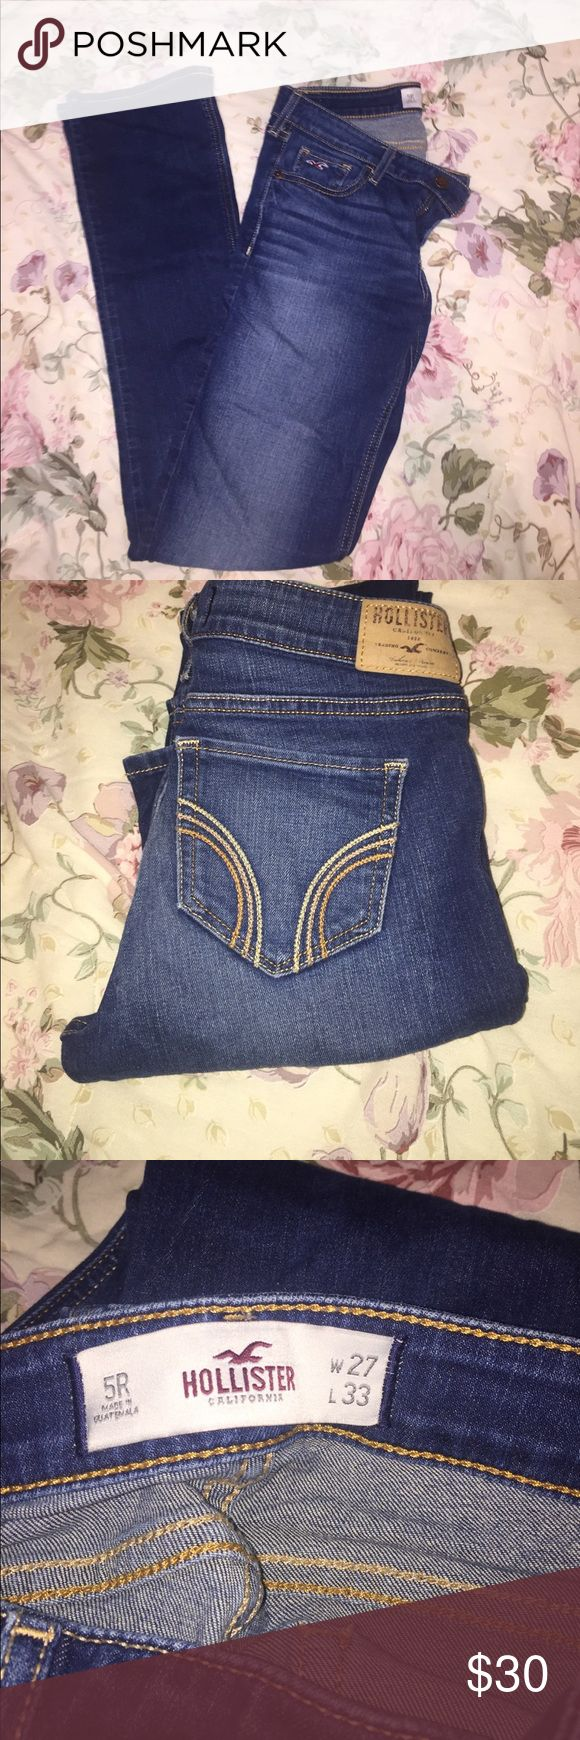 Gently Used Hollister Jeans Like New Hollister Jeans. Slim Fit 5R Hollister Jeans Skinny